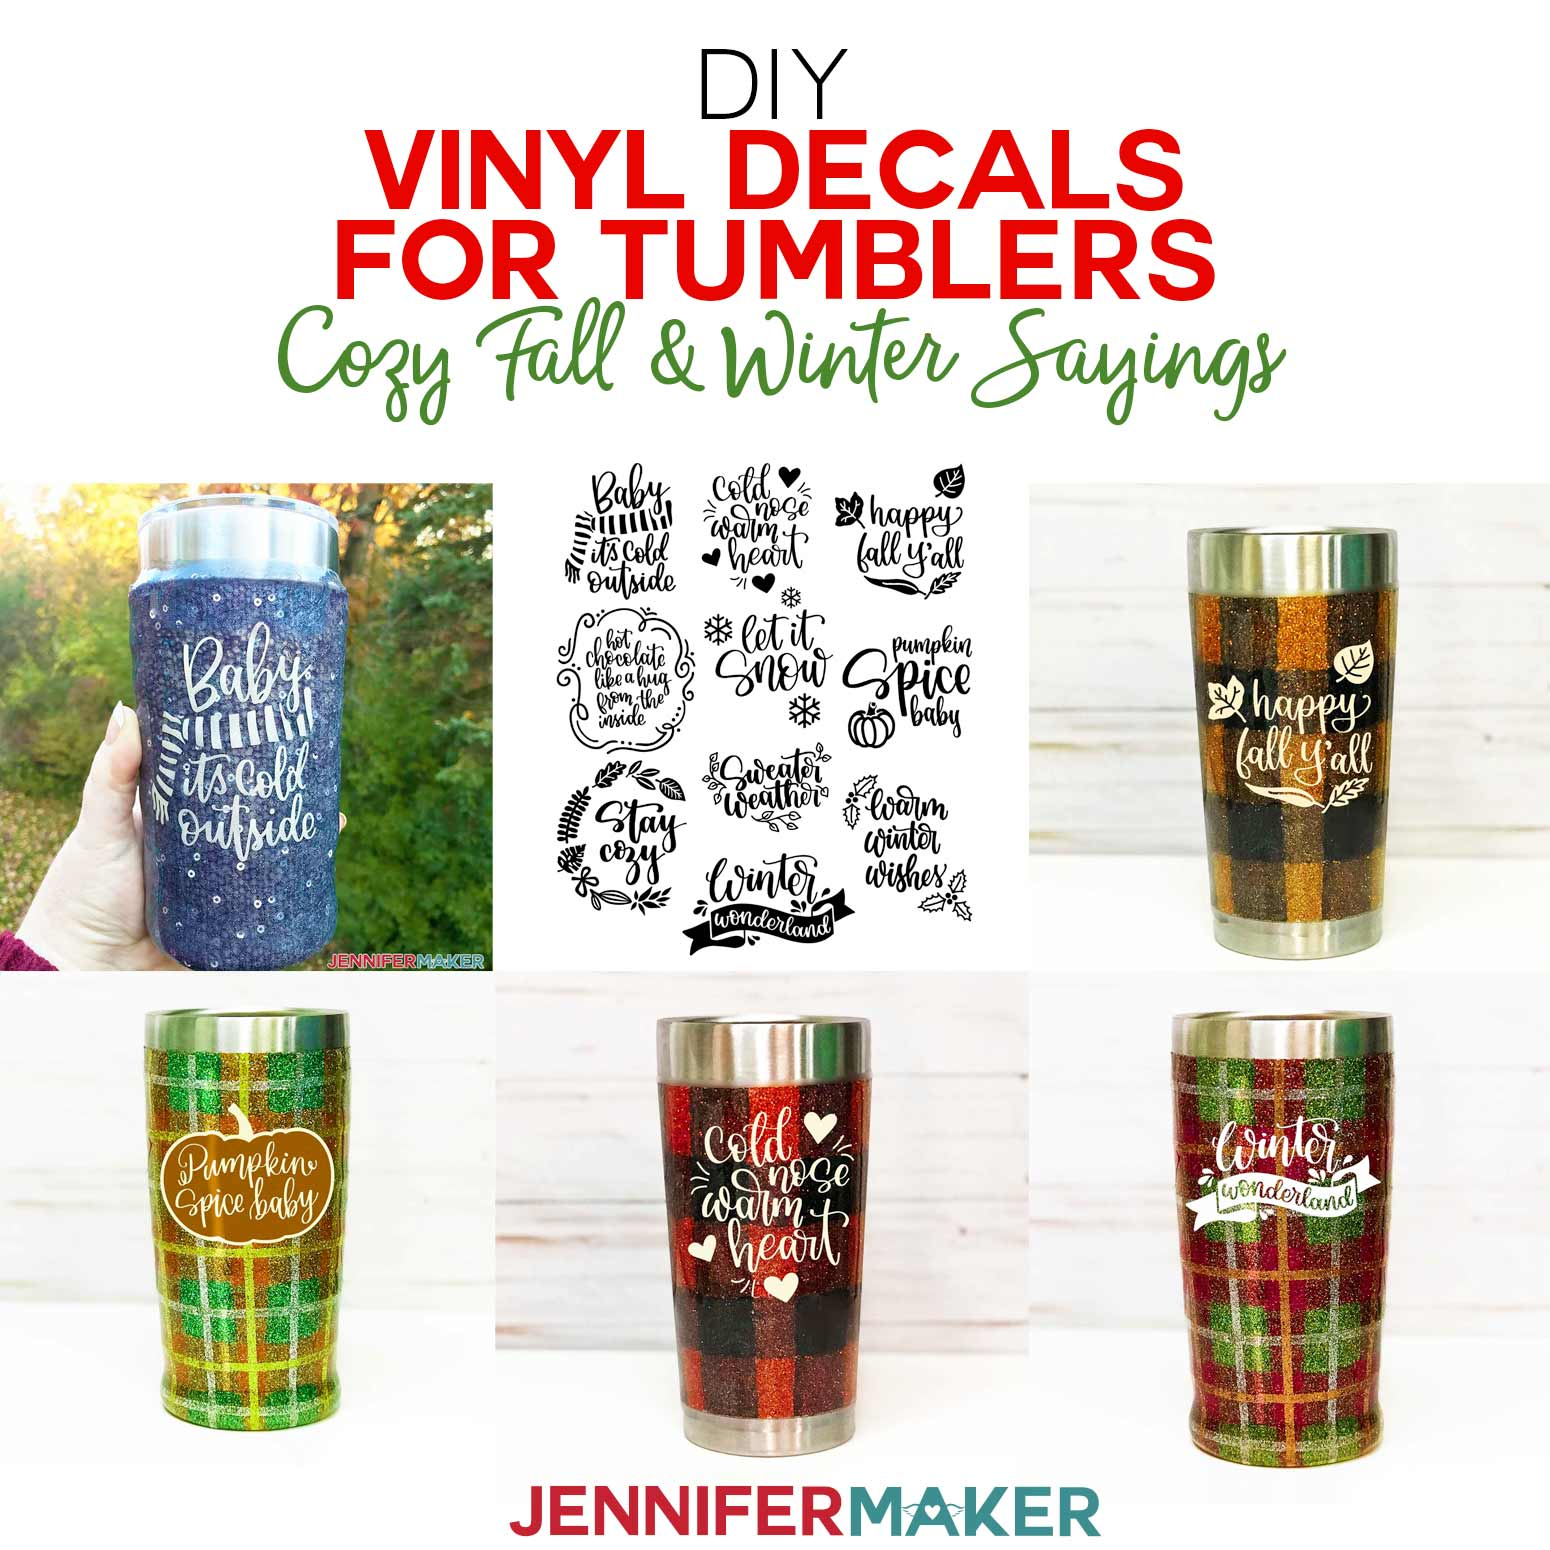 DIY Vinyl Decals for Tumblers with Cozy Fall & Winter Sayings | Free SVG Cut Files for Cricut | #tumbler #cricut #vinyl